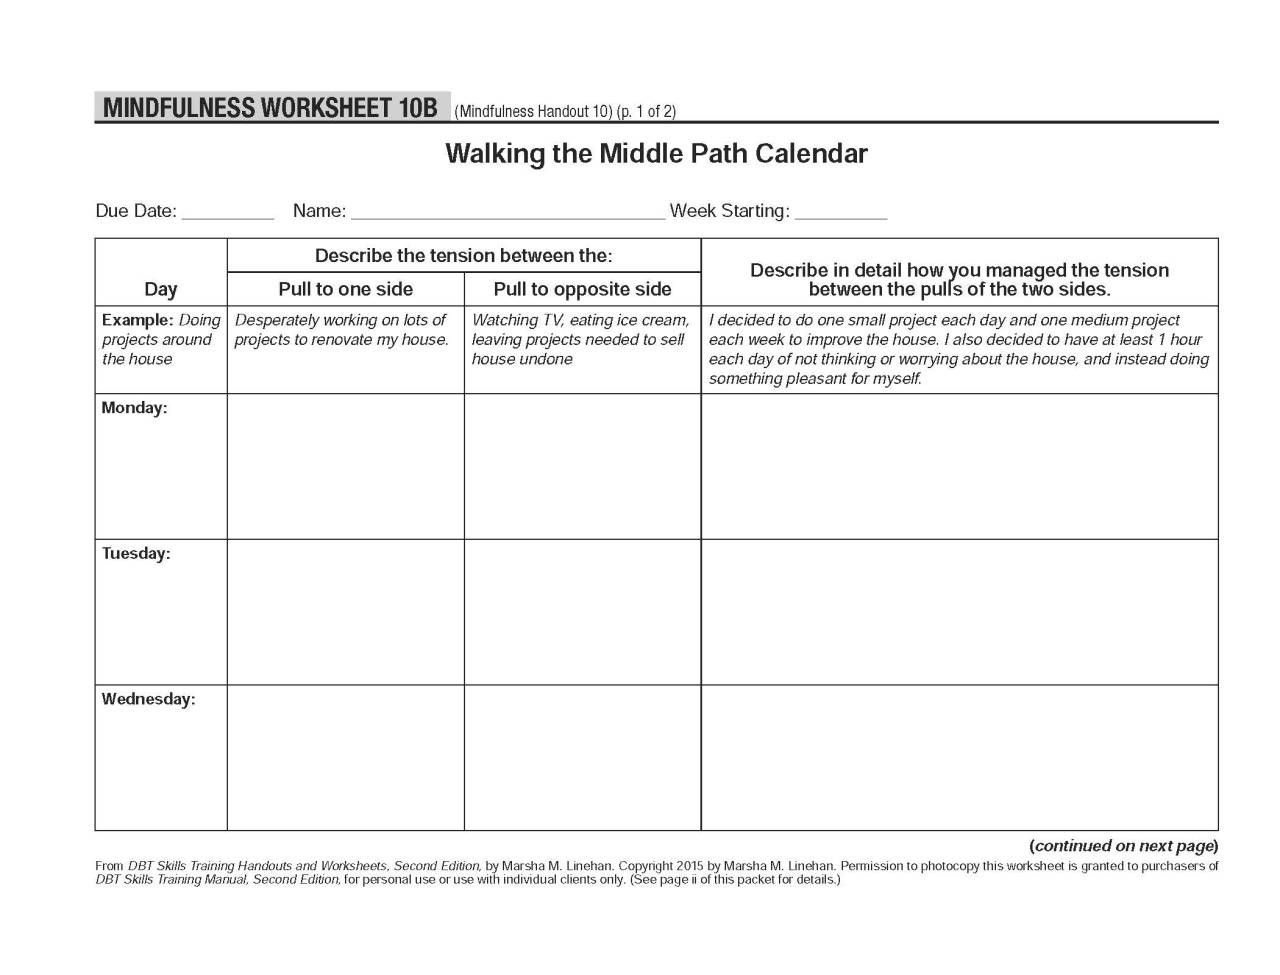 Healing Schemas Dbt Self Help Resources Walking The Middle Path Dbt Self Help Therapy Worksheets Self Help